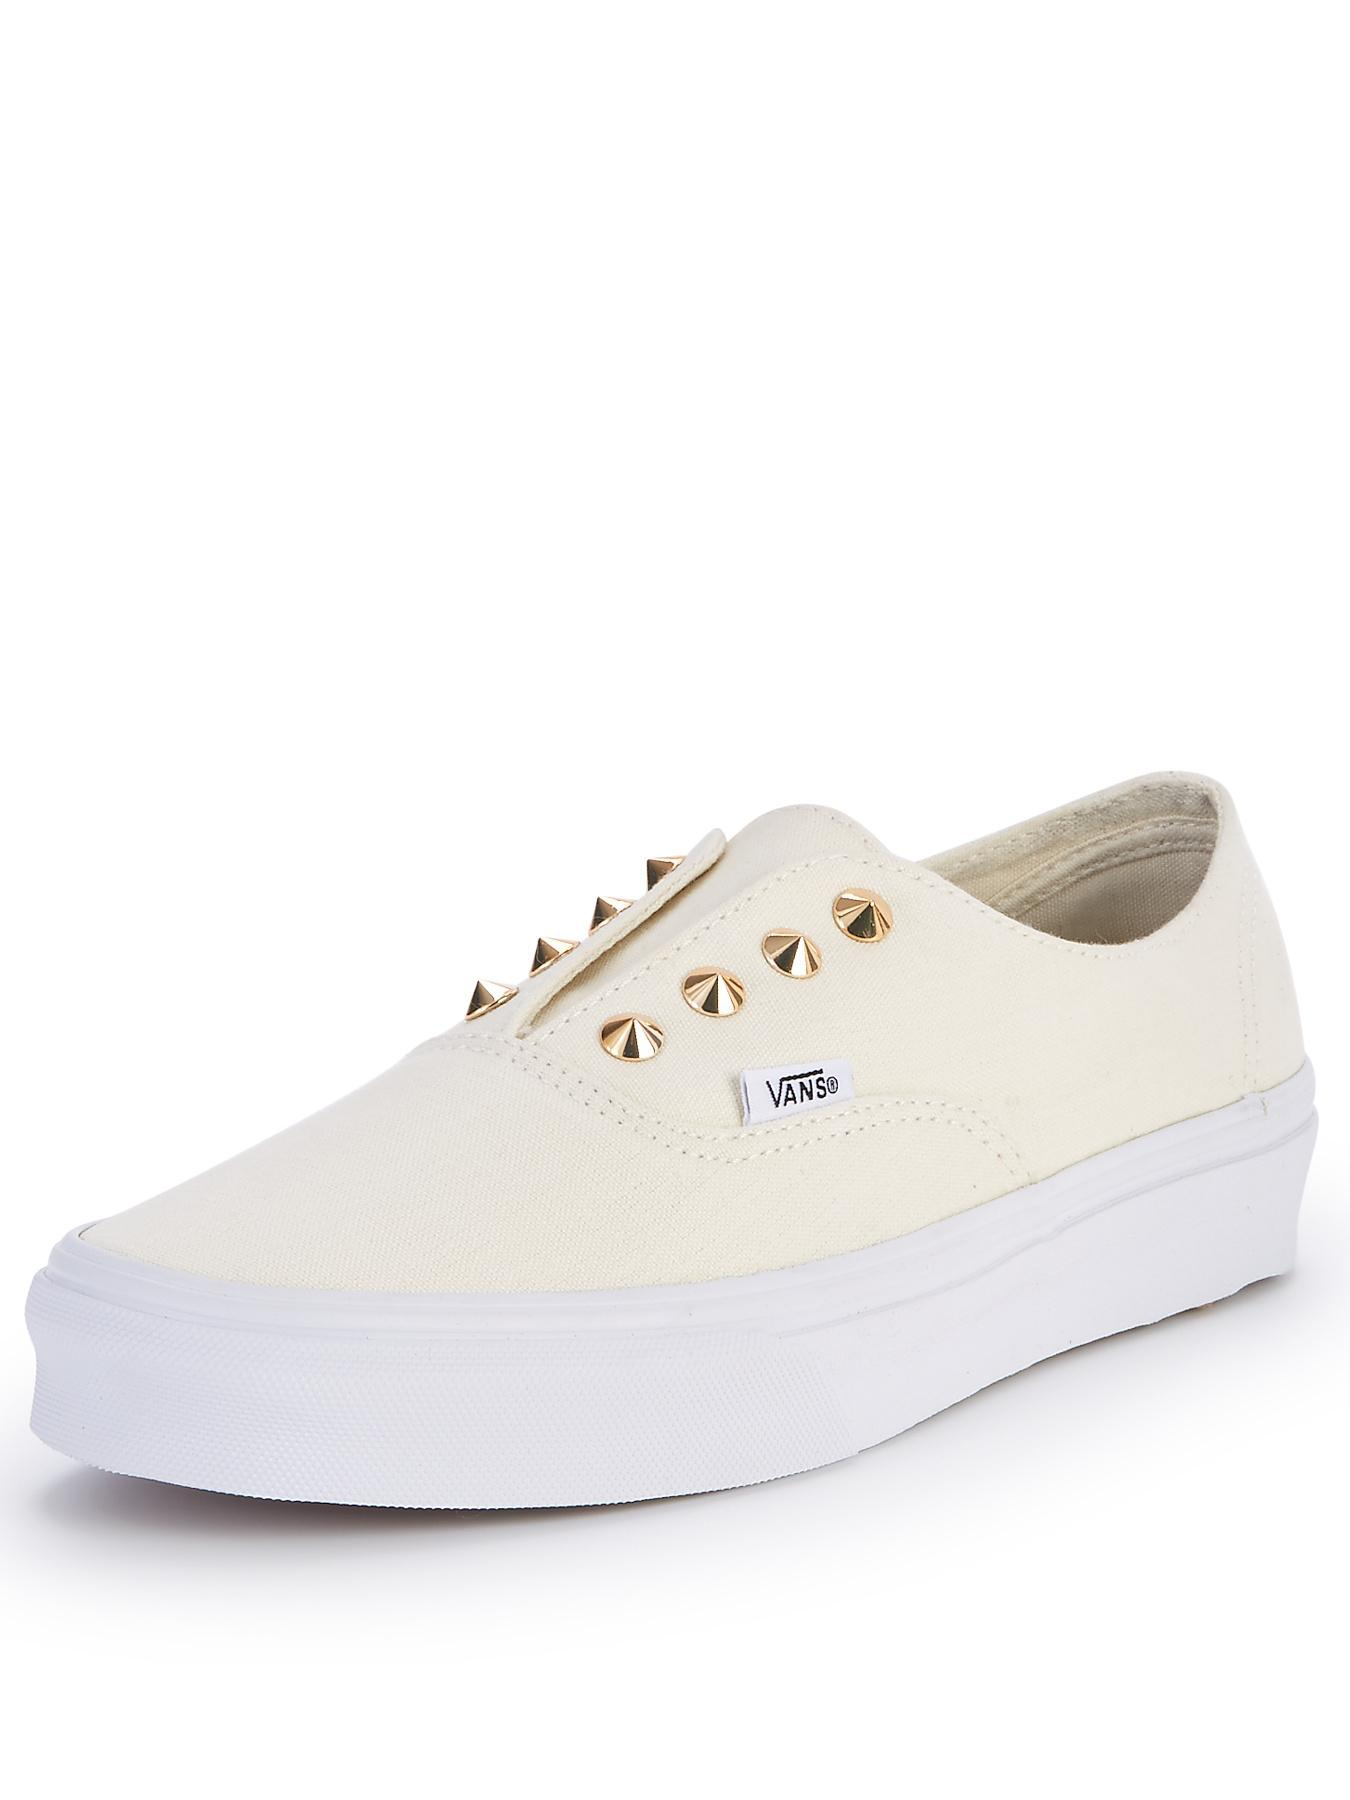 Vans Authentic Studs Trainers - White, White